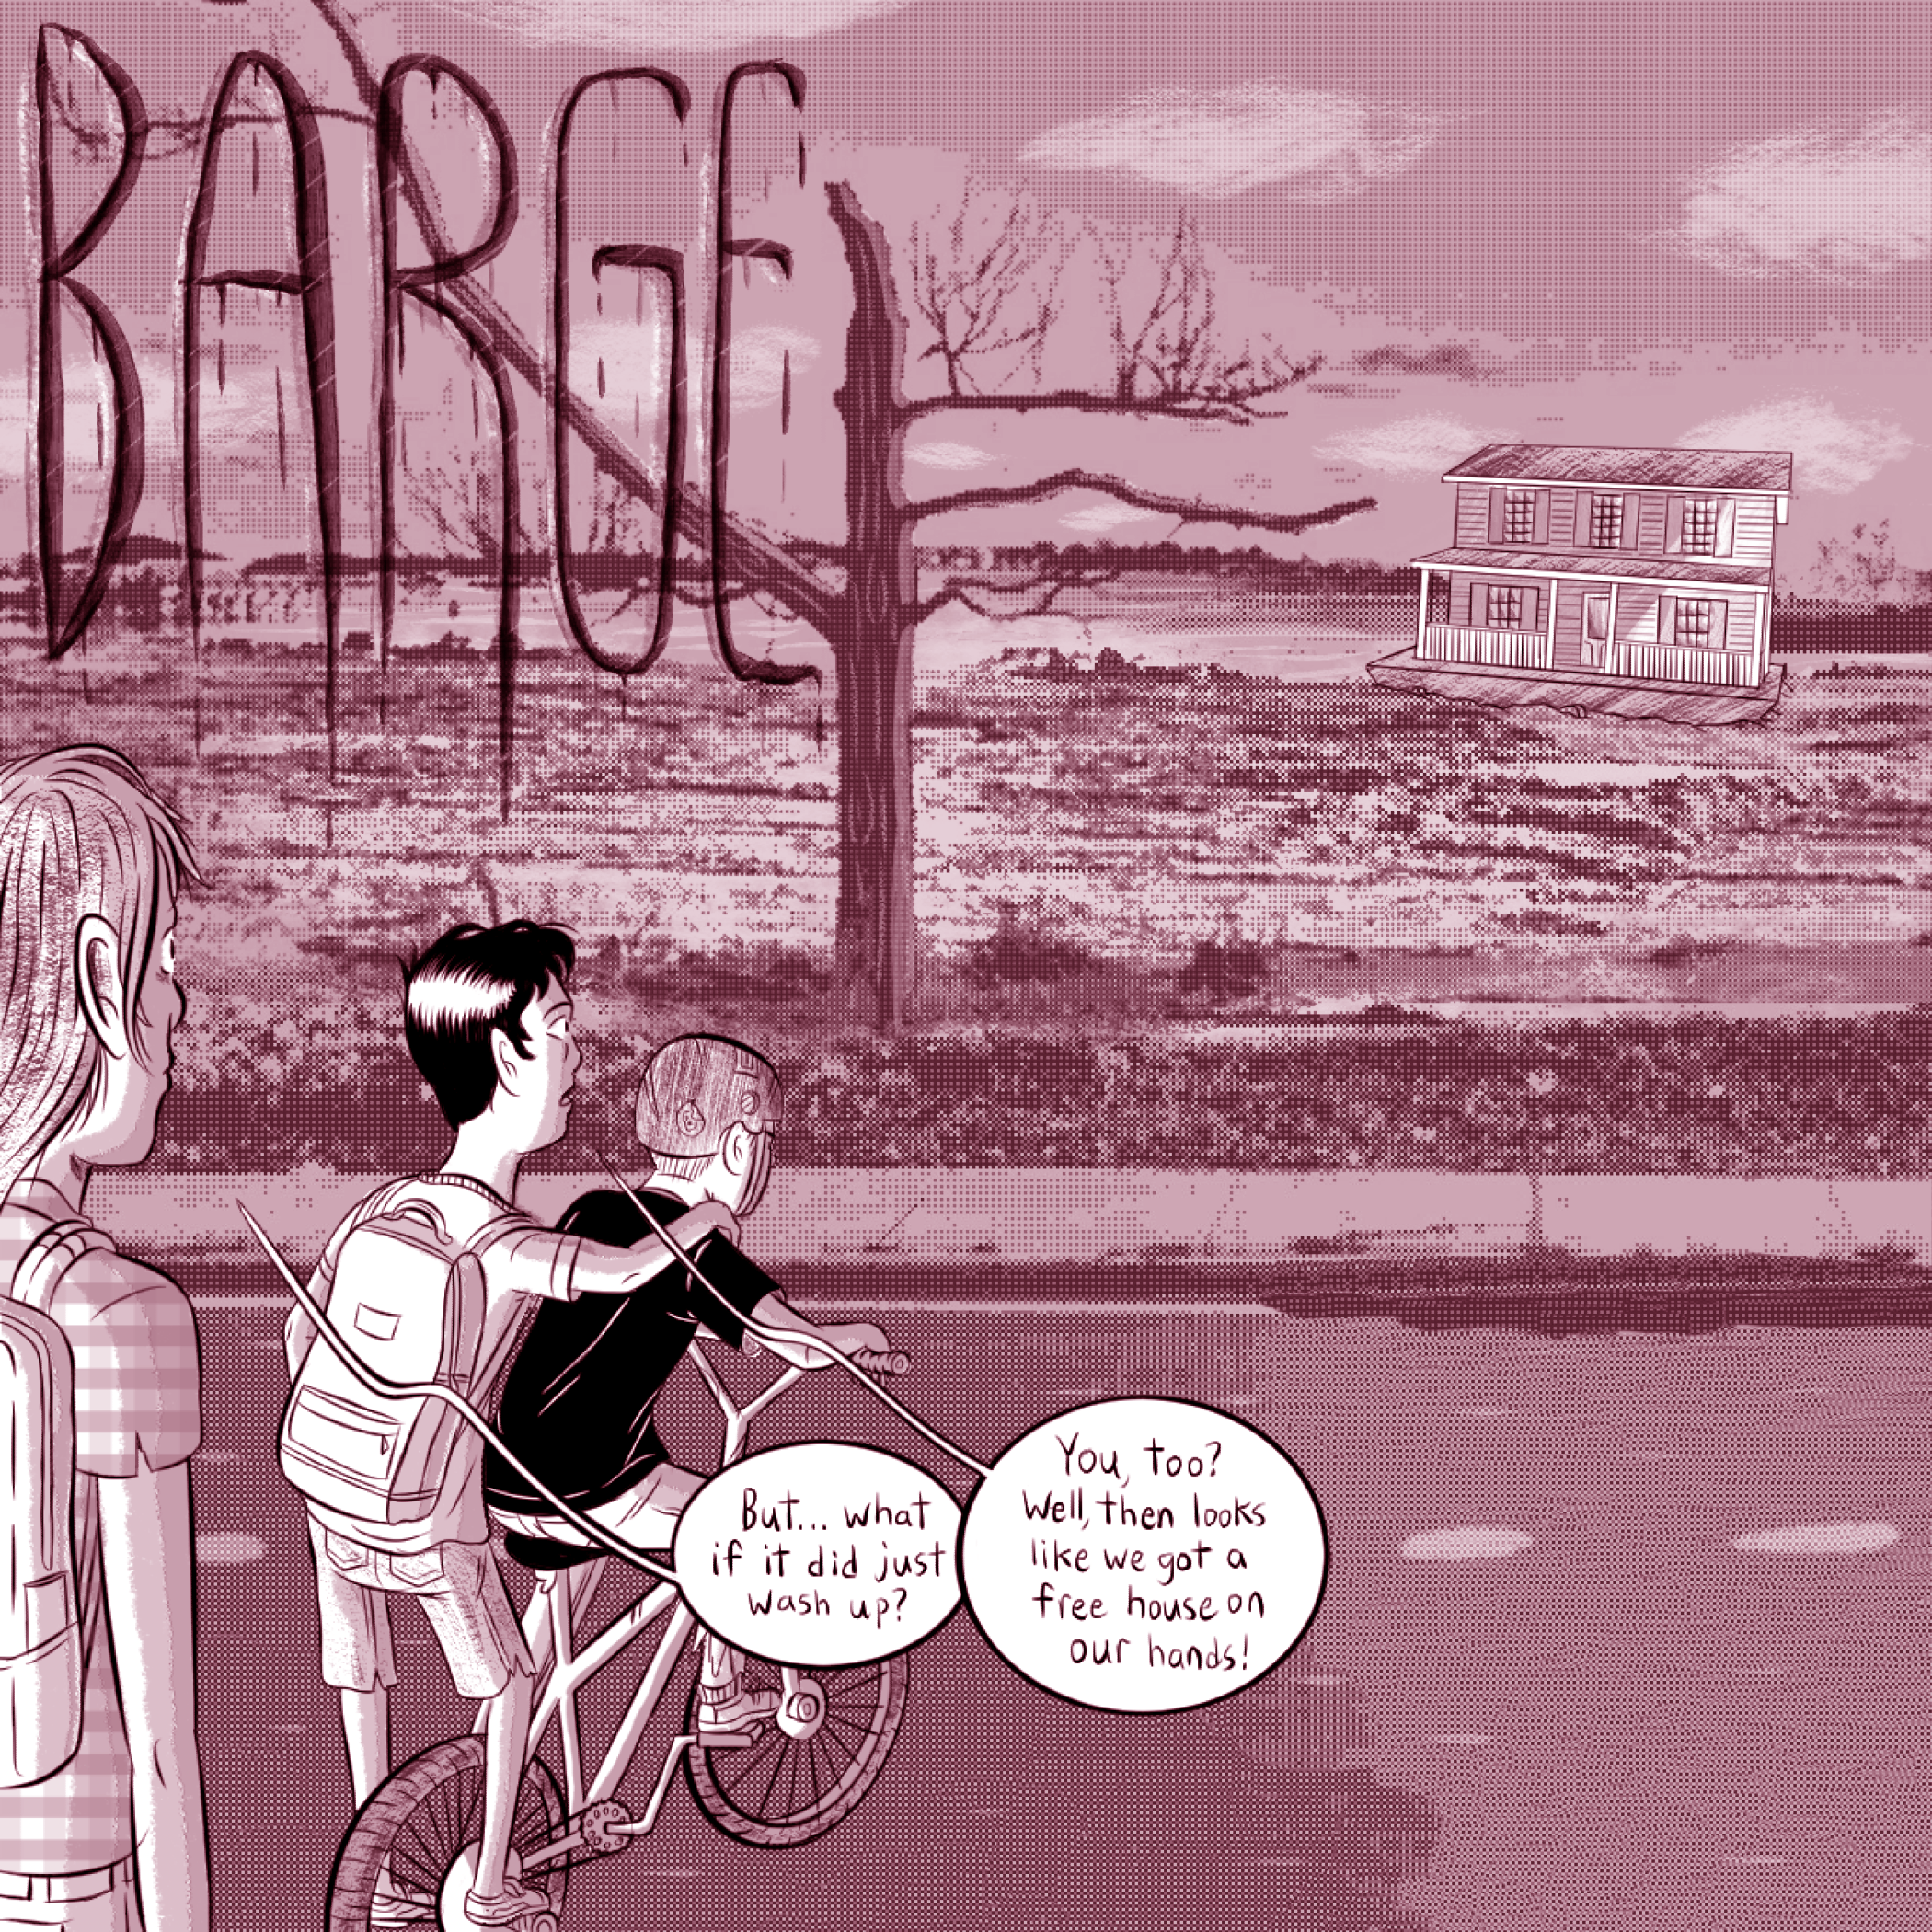 Barge_pg02.png